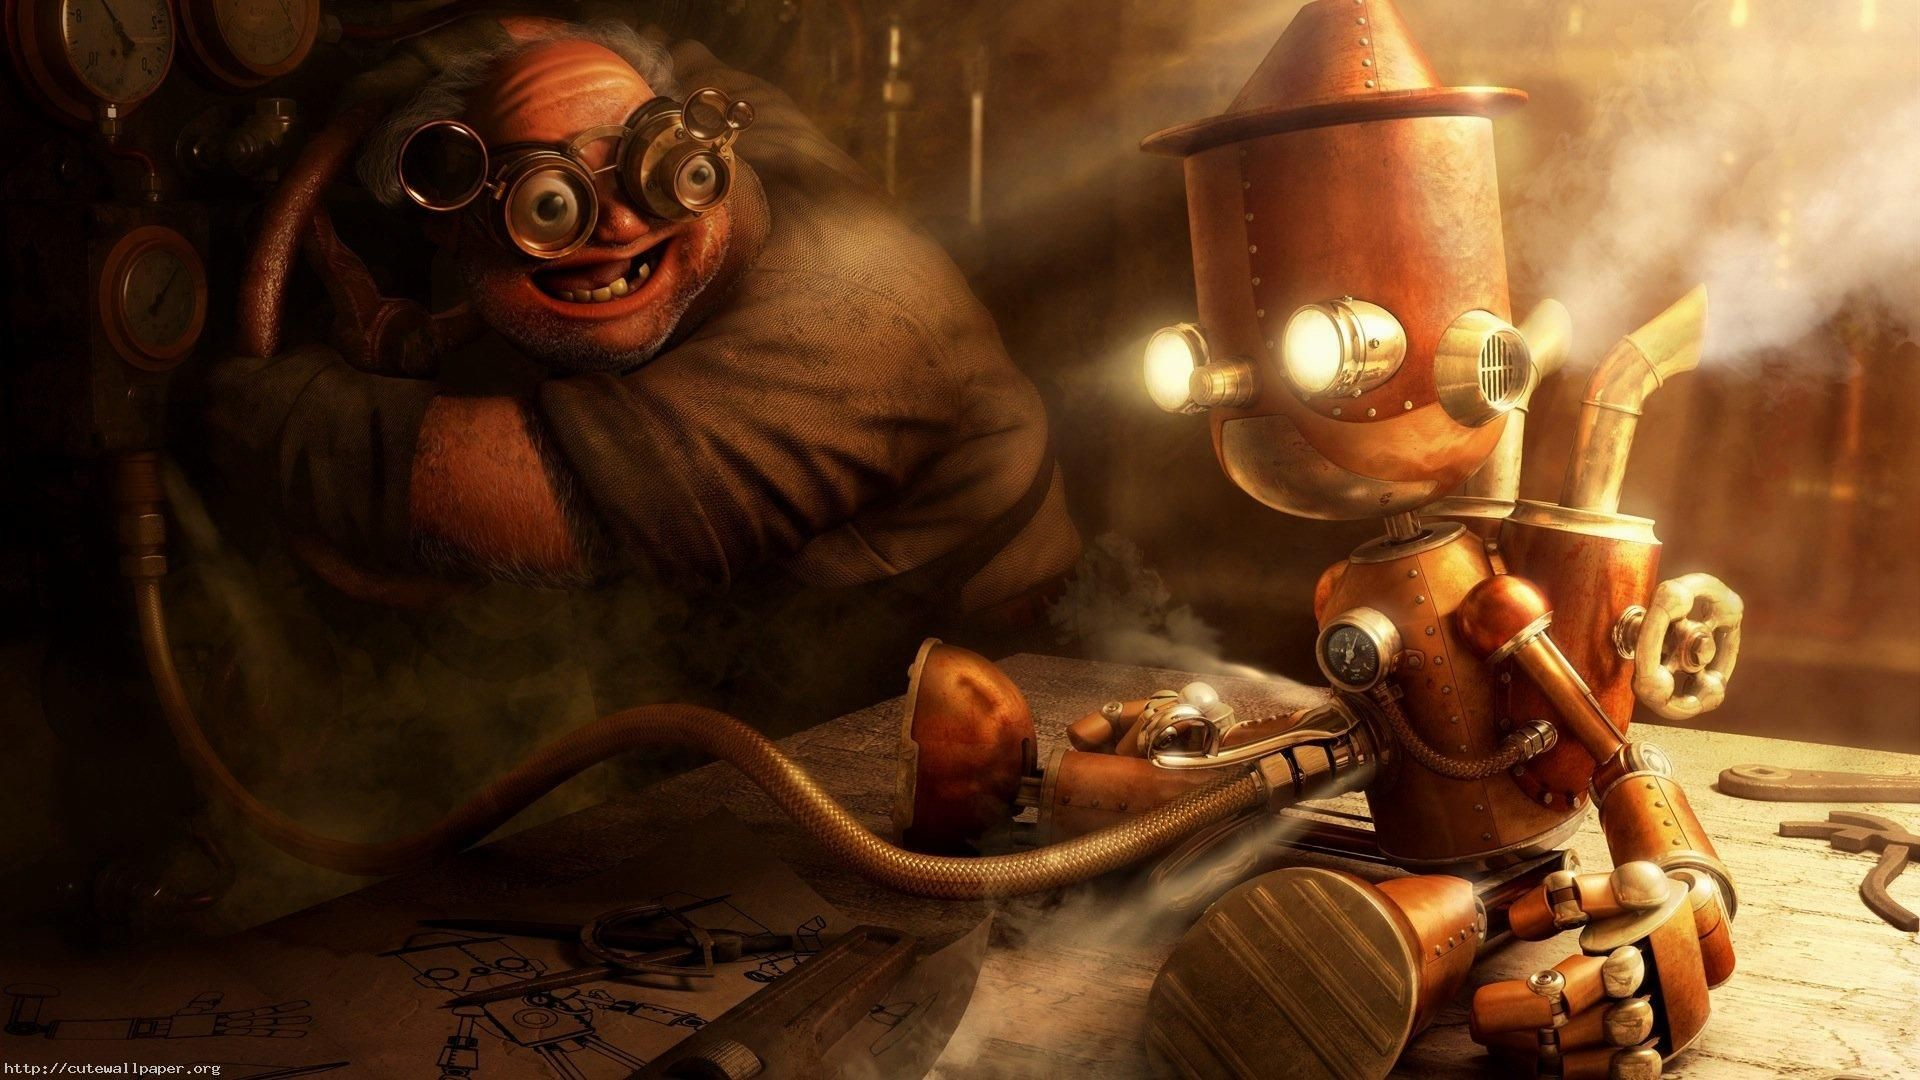 Res: 1920x1080, Steampunk Wallpaper 1920×1200 Steampunk Wallpaper (42 Wallpapers) |  Adorable Wallpapers